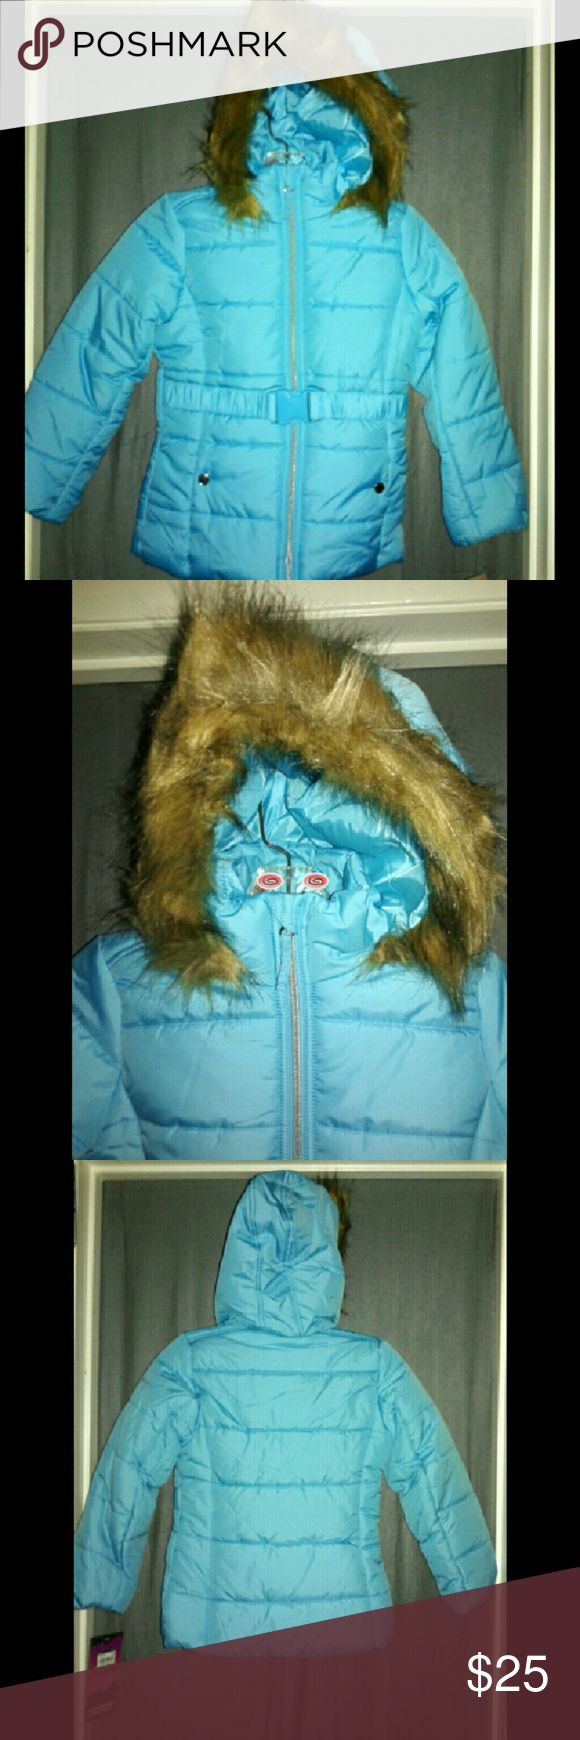 NWT PROTECTION SYSTEM LITTLE GIRLS PUFFER SIZE 6x BUNDLE 2 OR MORE & SAVE 30% UPON CHECKOUT NEVER USED WELL STORED IN GREAT FUNCTIONAL CONDITION I HAVE TONS OF ITEMS SO DETAILS ARE IN THE ?'s & COMMENT SECTION PLS I ENCOURAGE ?'s. IT HELPS BUILD TRUST TO AVOID Cx PLS ASK ME TO DOUBLE CHECK B4 PURCHASING I SELL ON OTHER APPs & THE DAY CAN GET HECTIC? I ANSWER?'s 6:30AM-8:30PM PT WHN I'M NOT DRIVIN ?'s AFTER 8:30PM WILL BE ANSWERED NXT DAY THANKS FOR YOUR INQUIRY & HOPE Y'ALL HAVE A GREAT DAY…